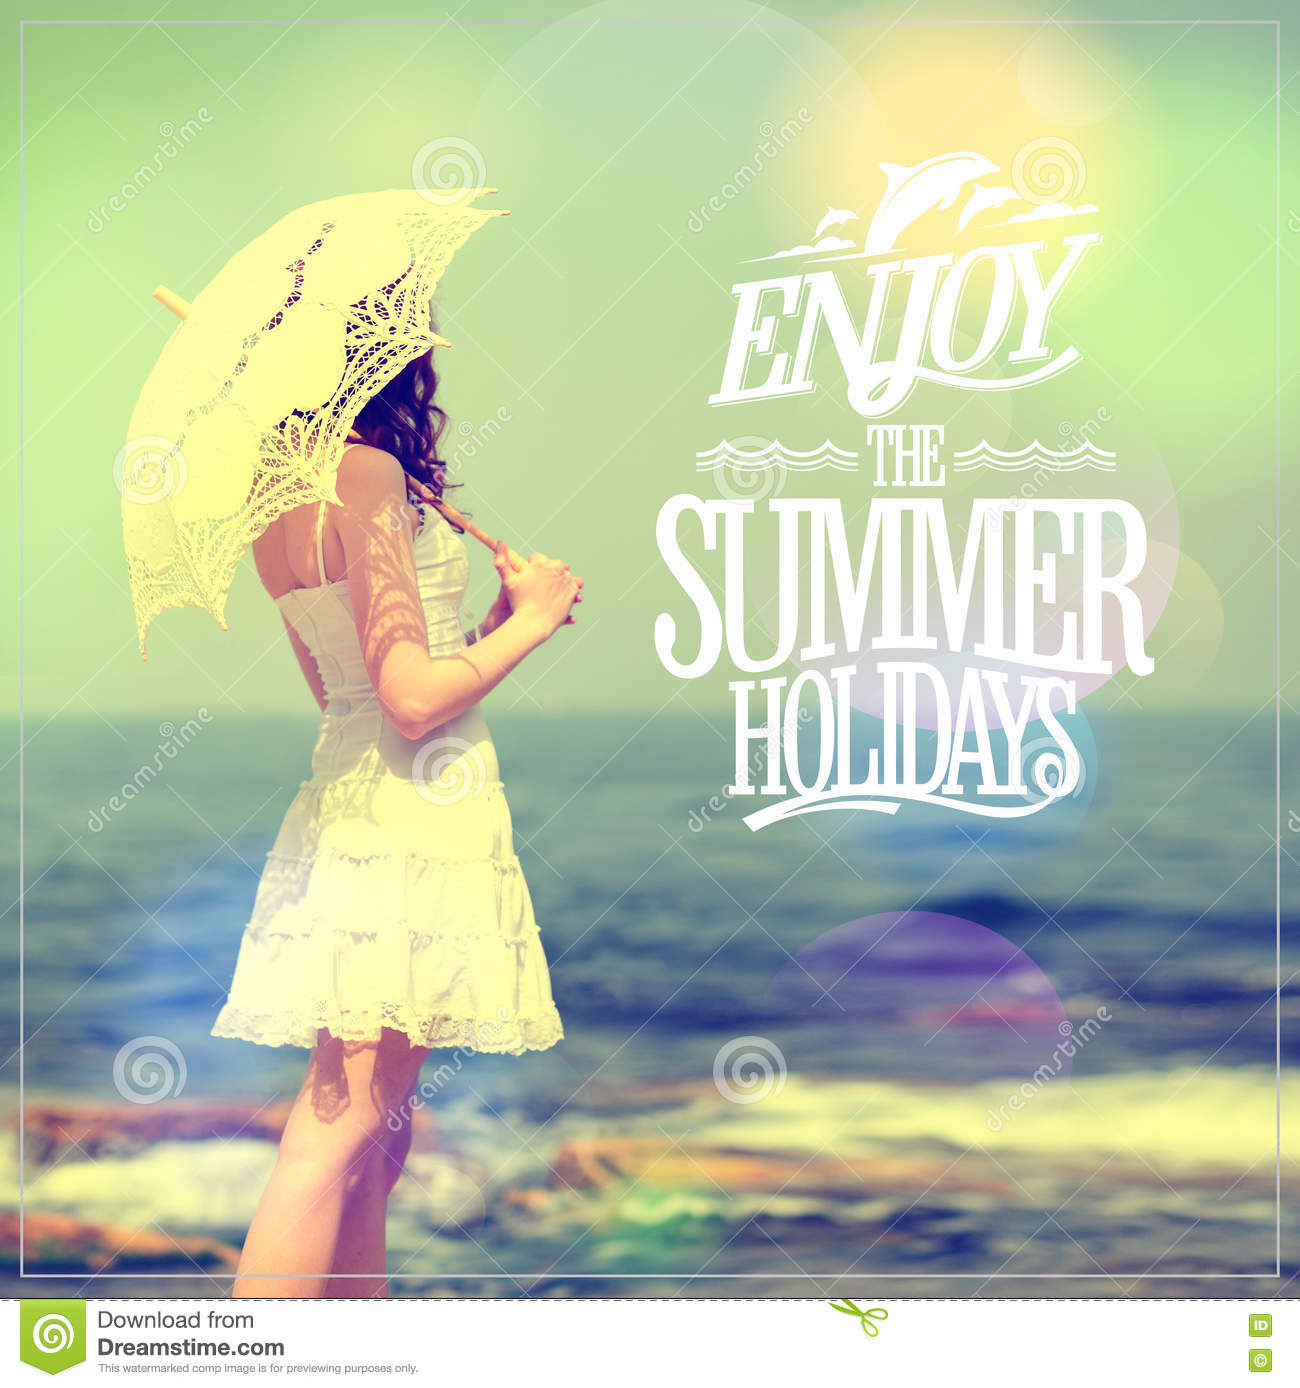 Enjoy The Summer Holidays Quote Card With Girl In White ...